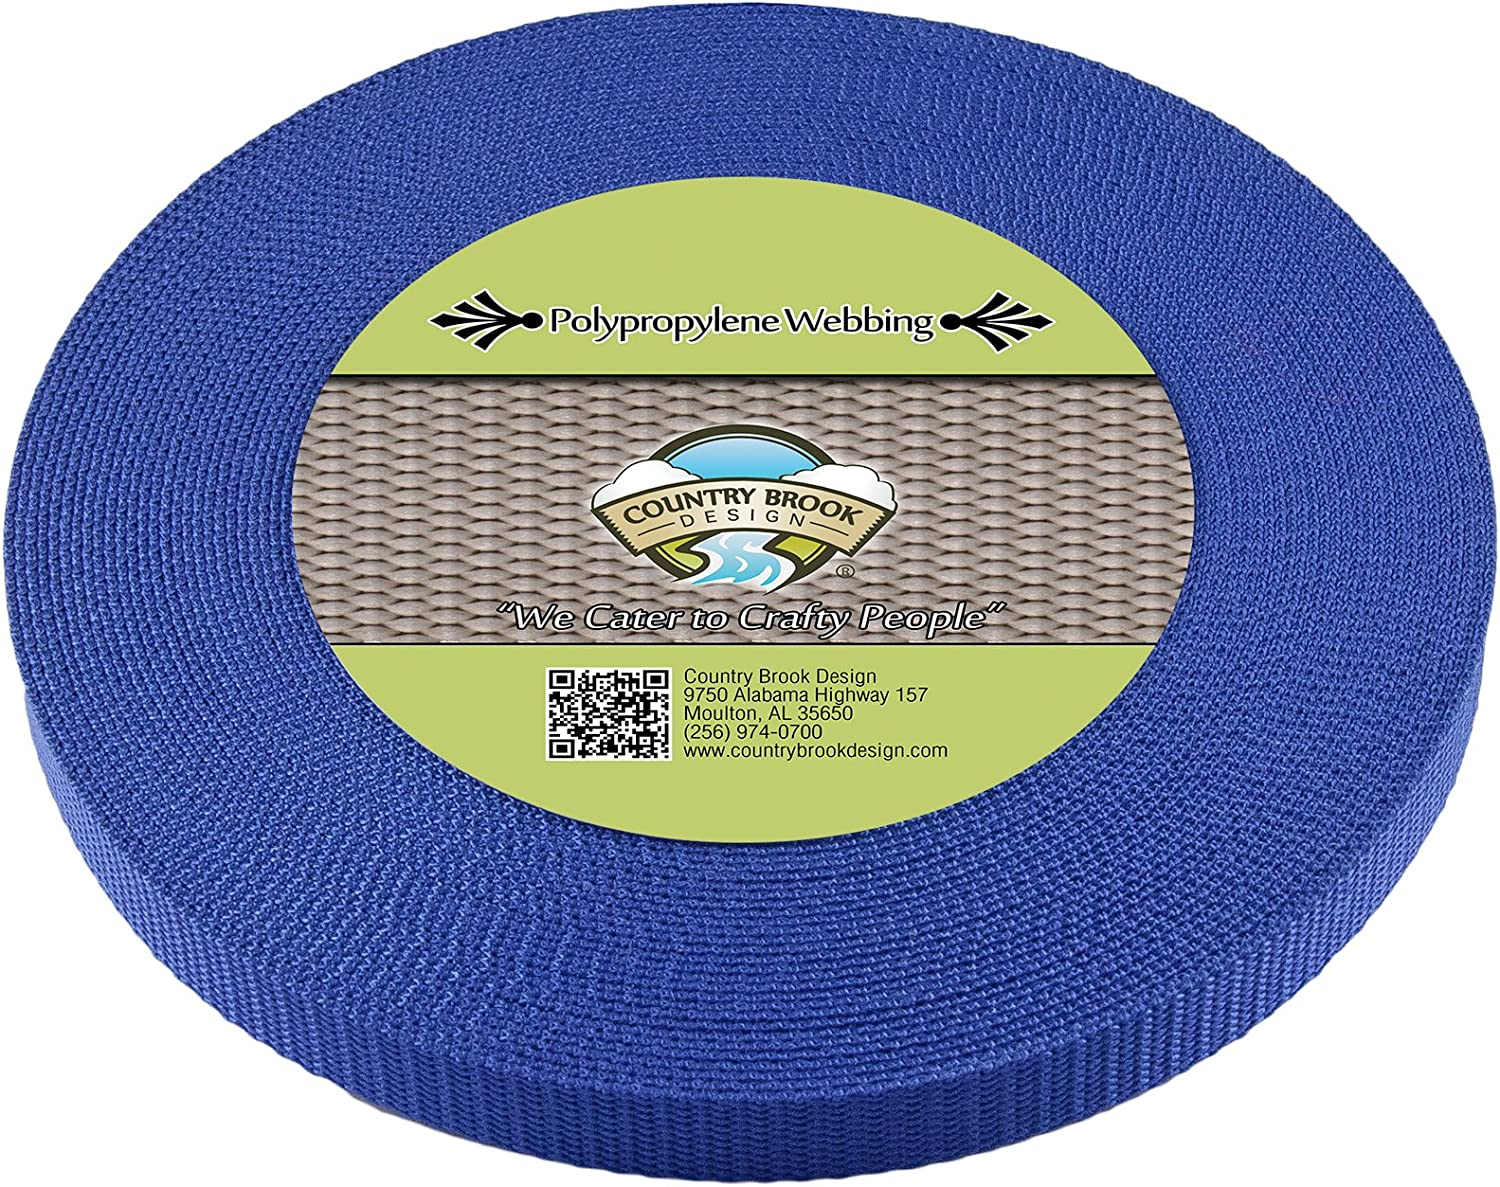 Country Brook Design 3 4 Inch Victorian blueee Heavy Polypro Webbing, 50 Yards